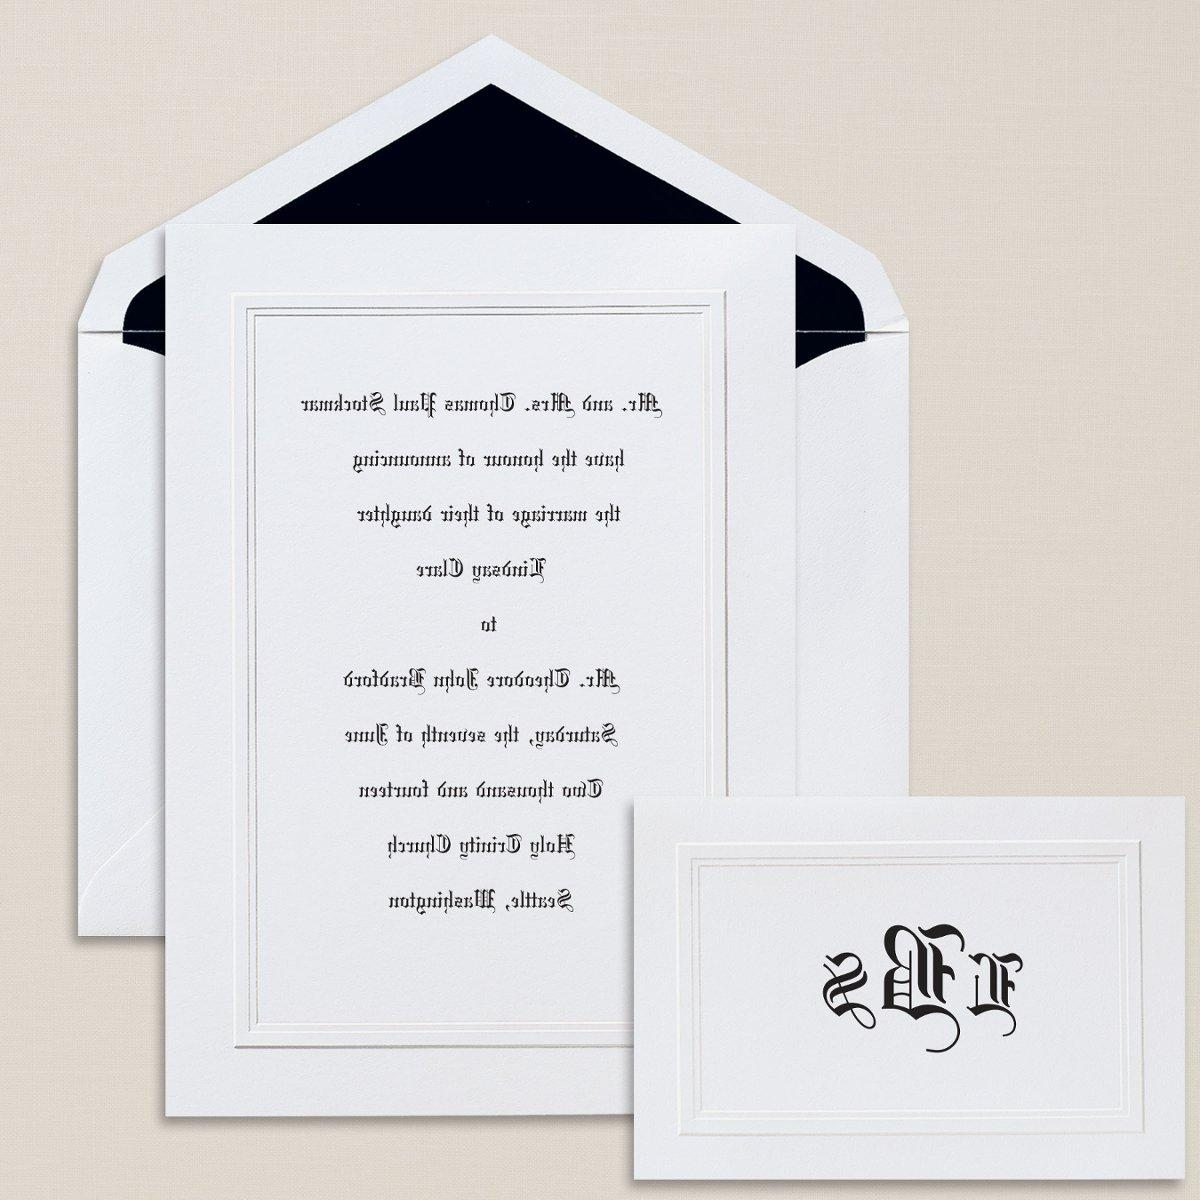 High Style - This classic fold-over invitation will reflect your impeccable